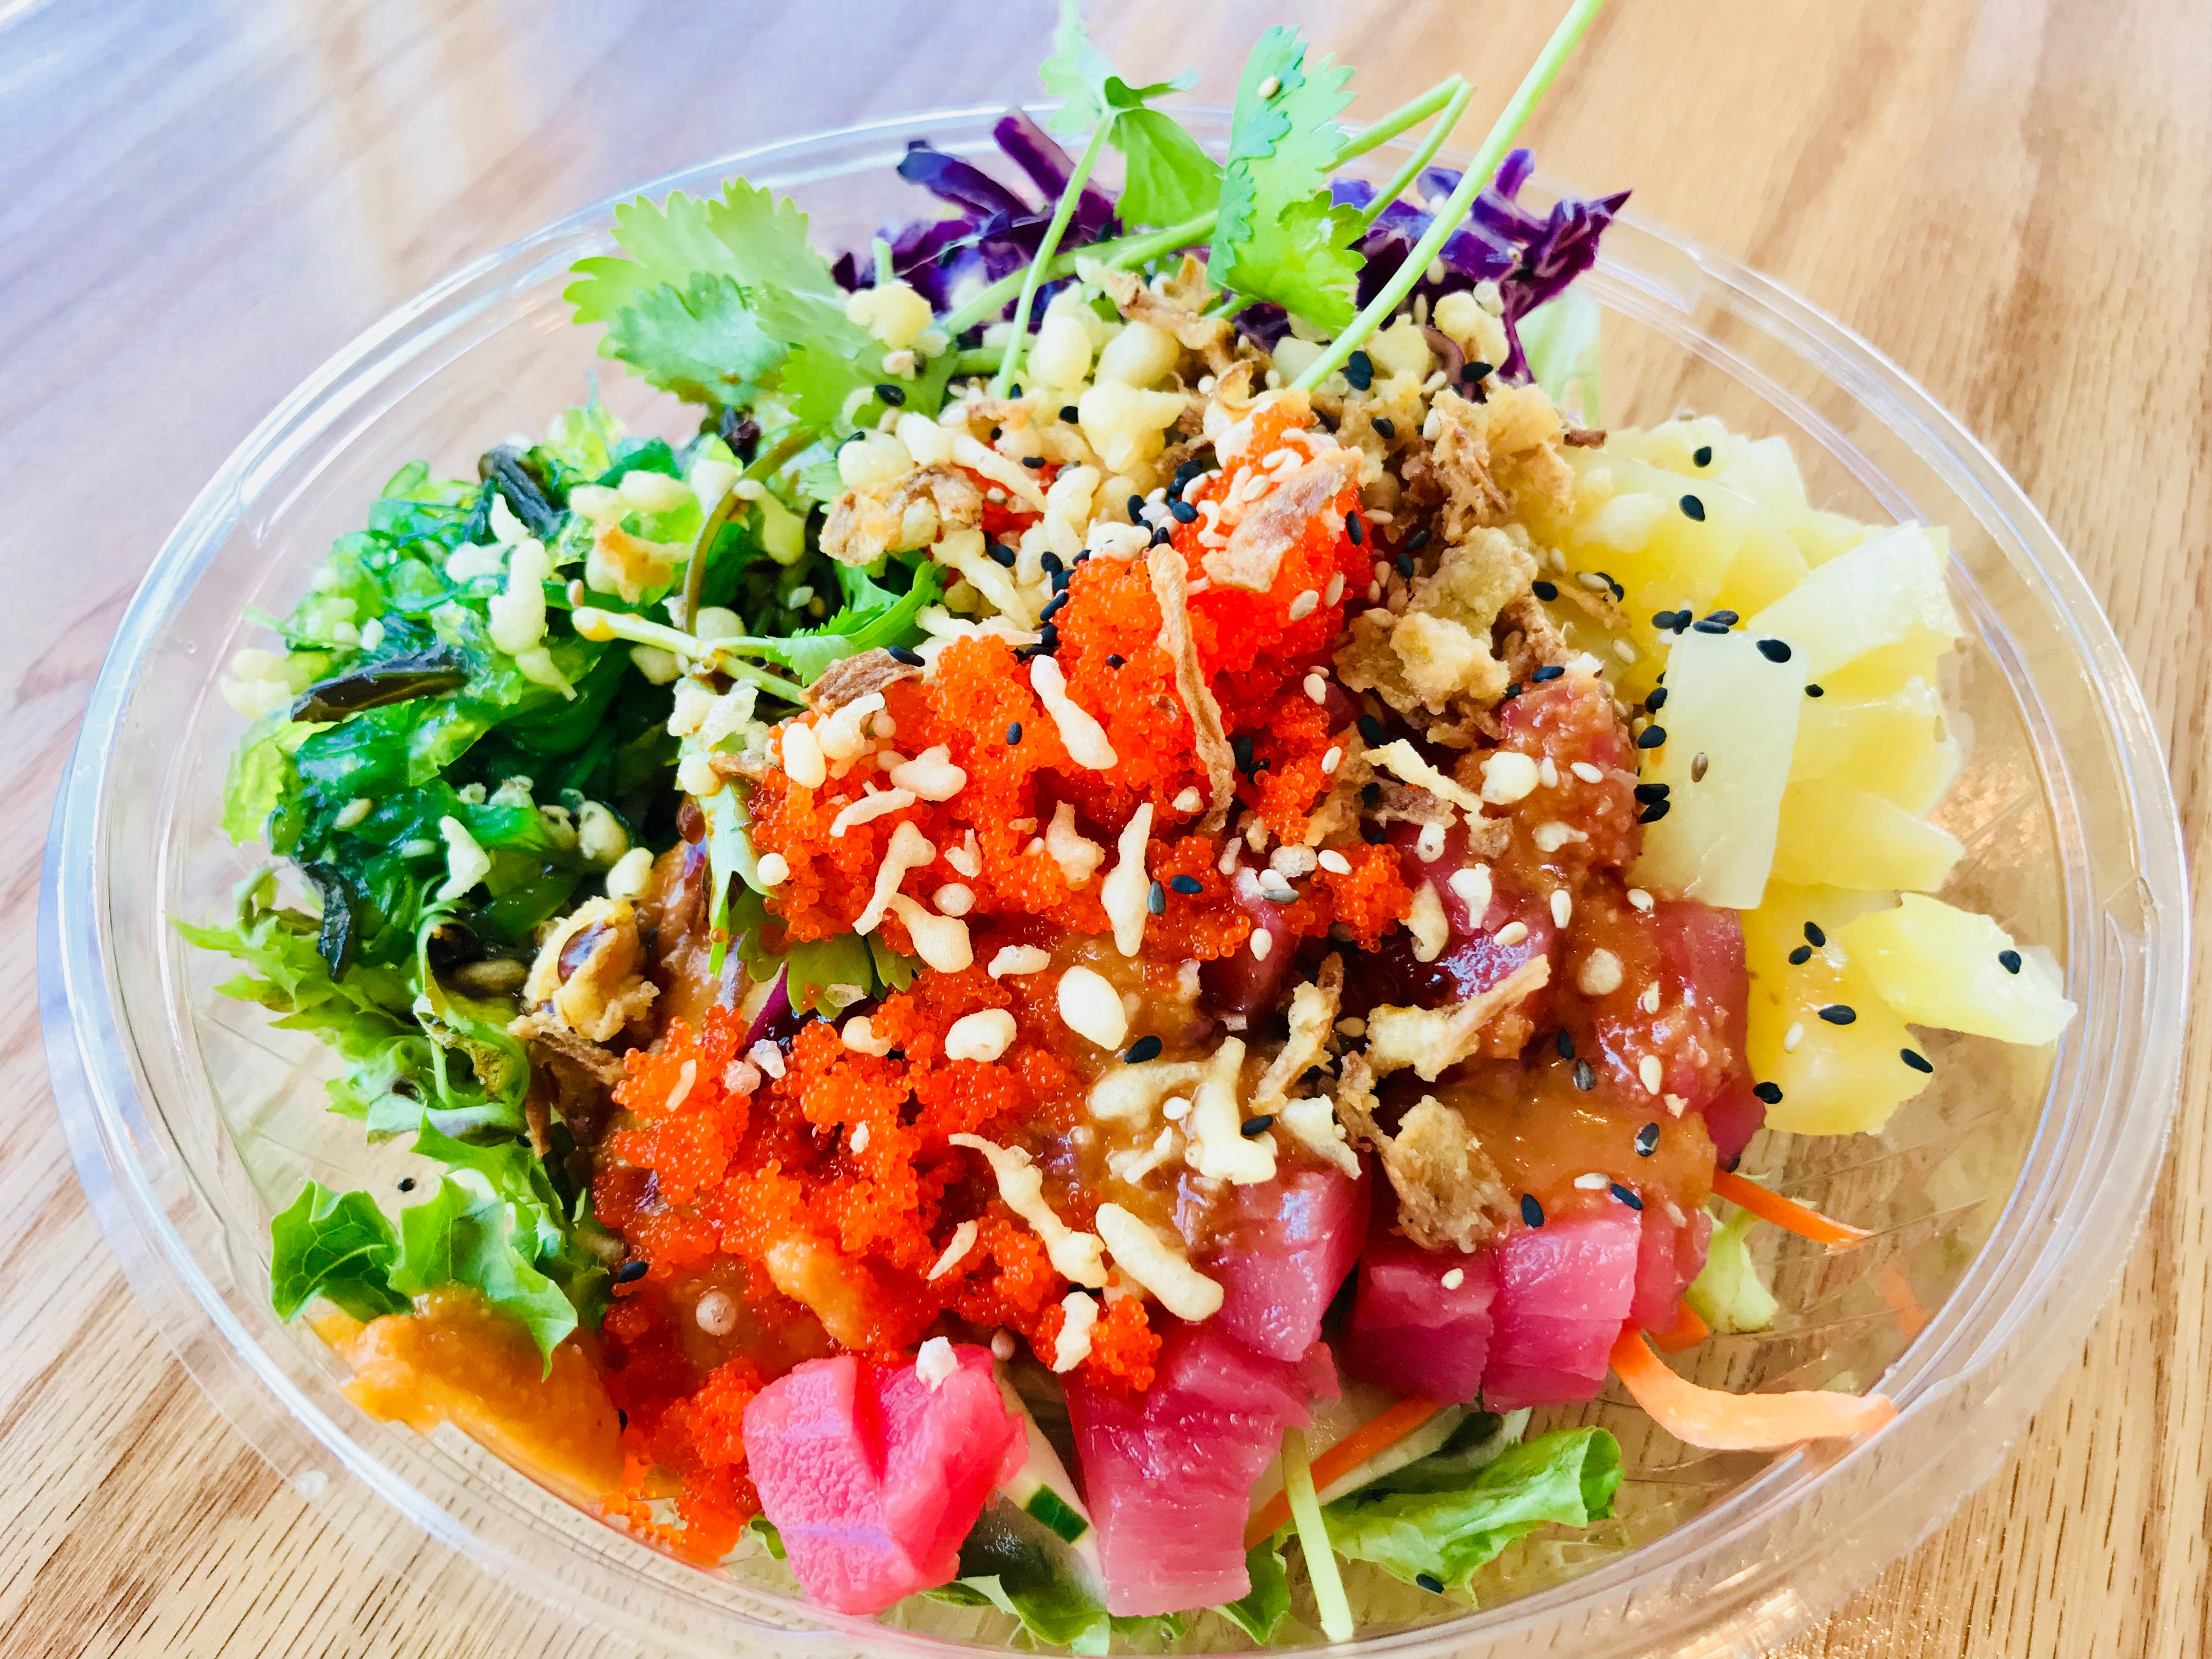 Poke Fun: This build-your-own poke bowl features ahi tuna on a bed of greens and topped with onions, red cabbage, cilantro, cucumber, scallions and carrots, along with ginger and poke sauces, seaweed salad, pineapple, crispy onions, roasted sesame seeds and tempura flakes.